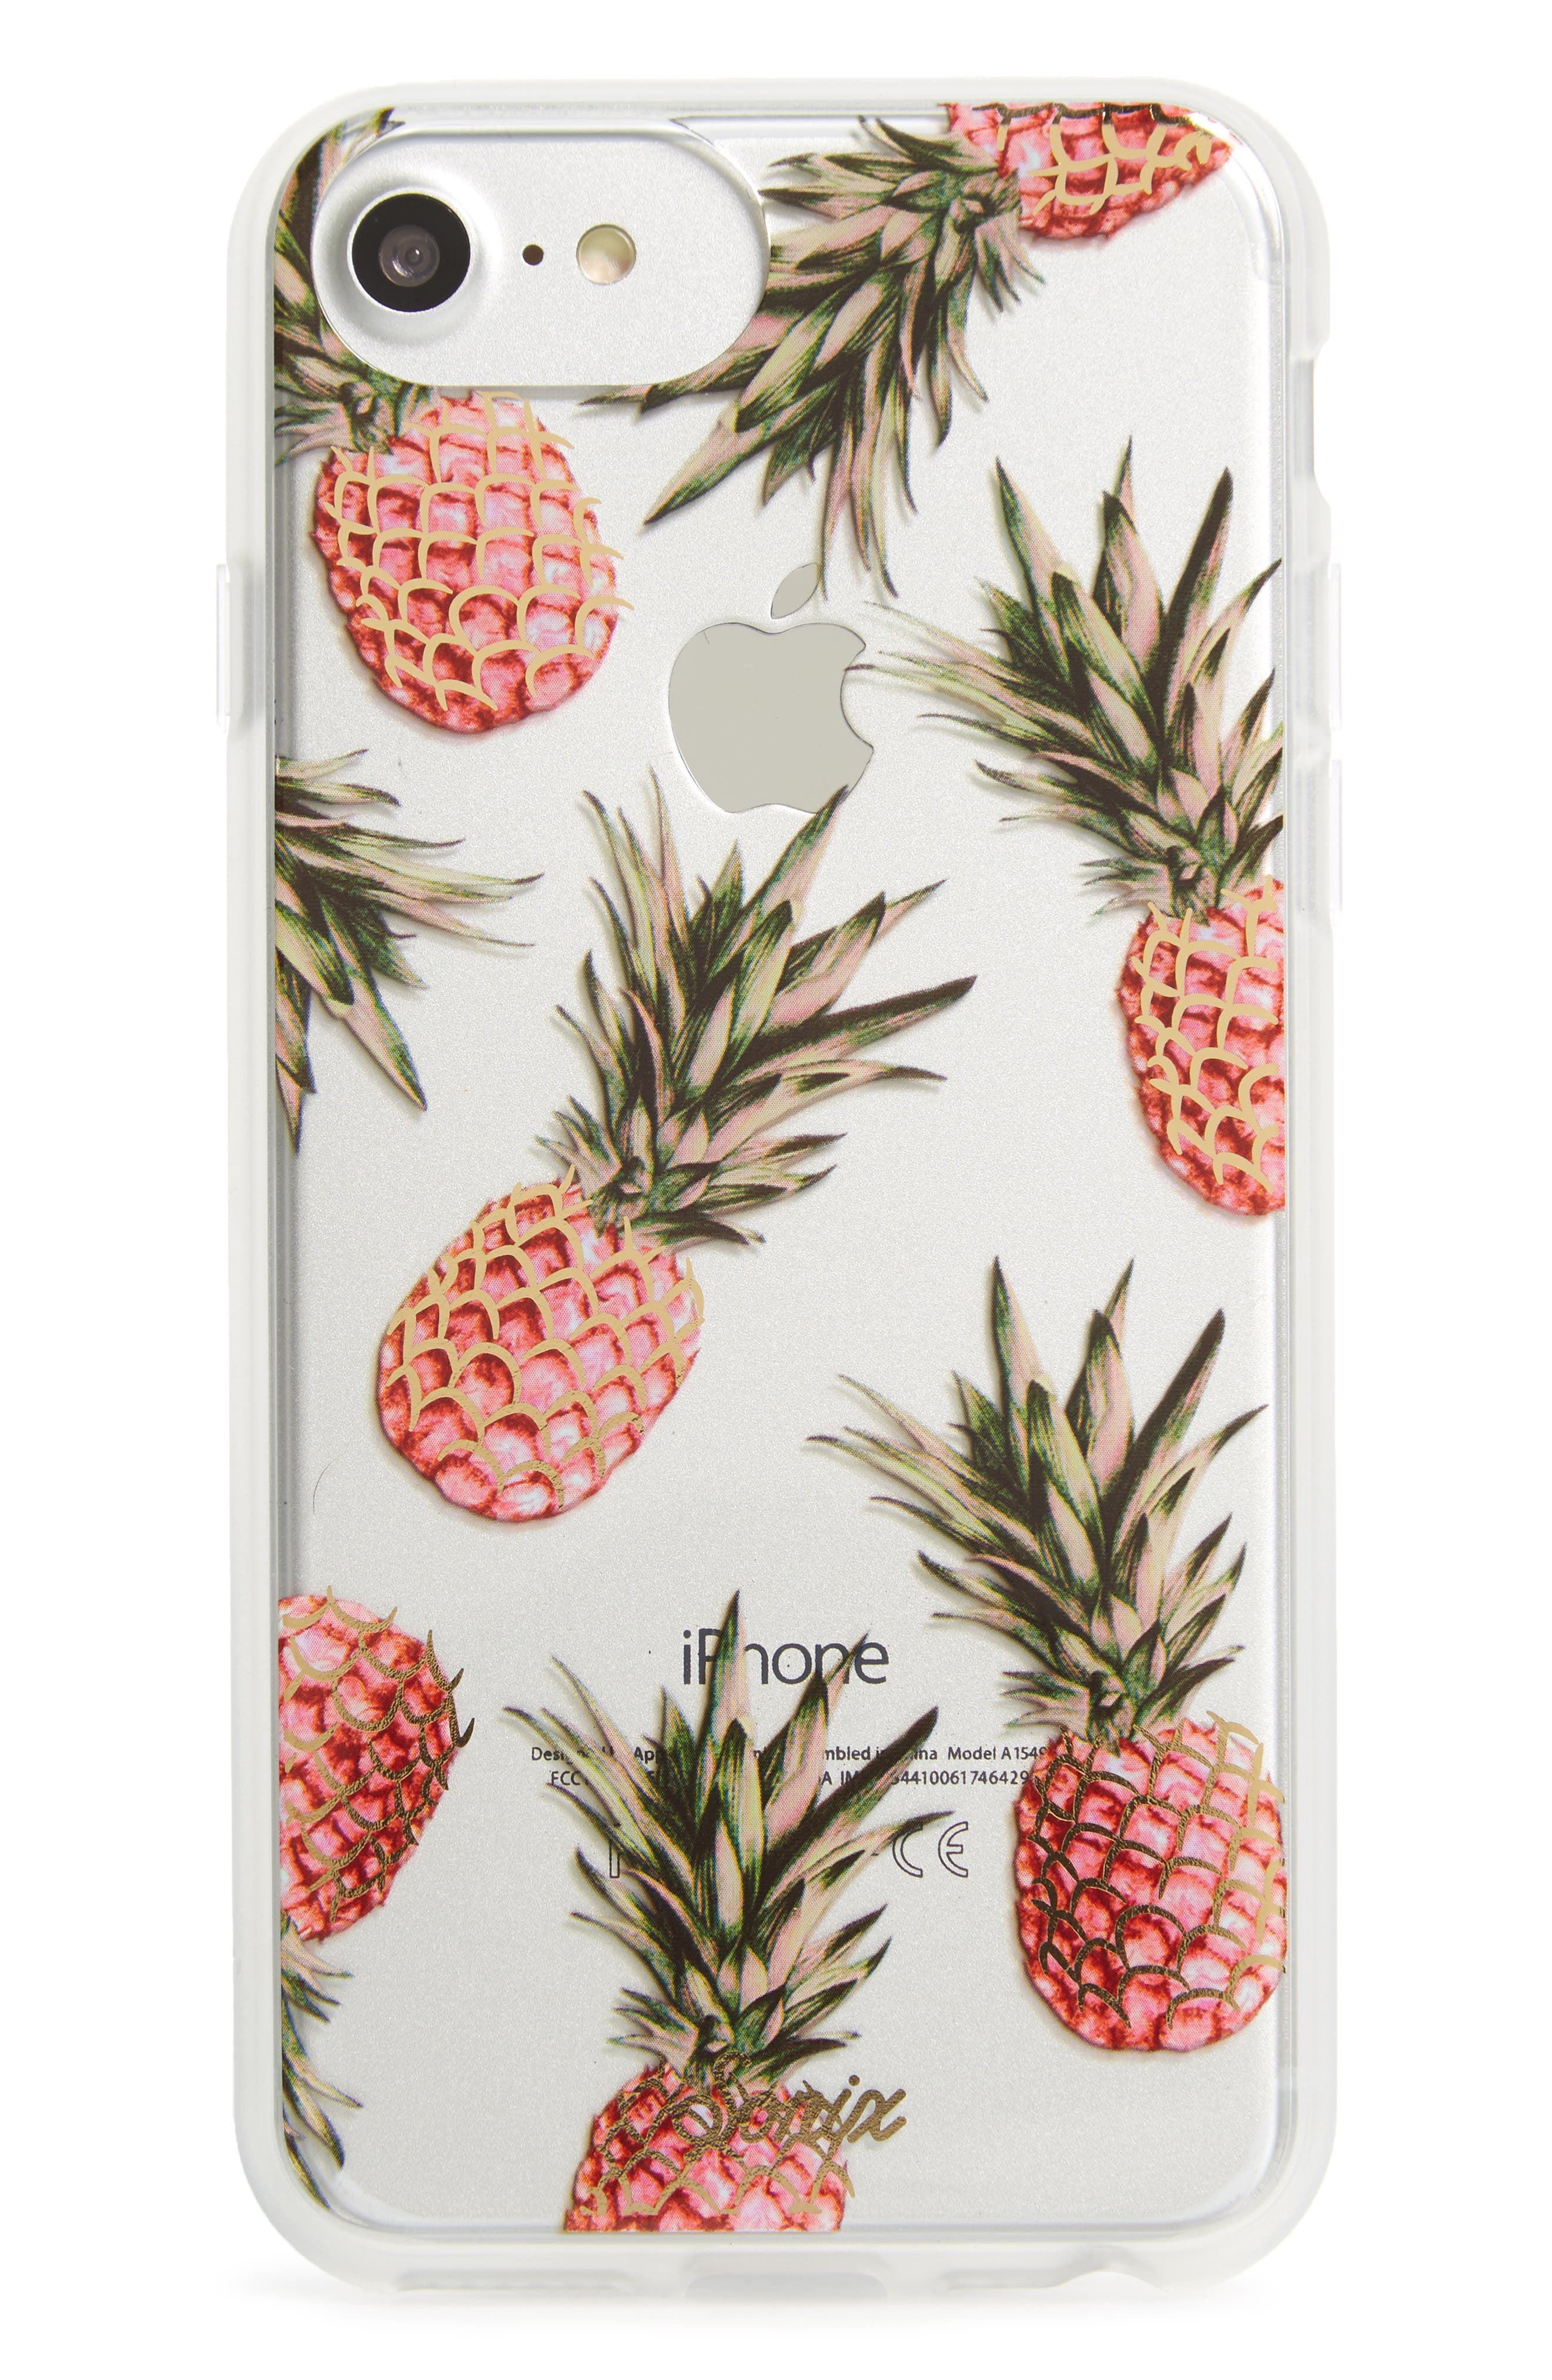 Sonix Pina Colada iPhone Case (6/7 & 6/7 Plus)